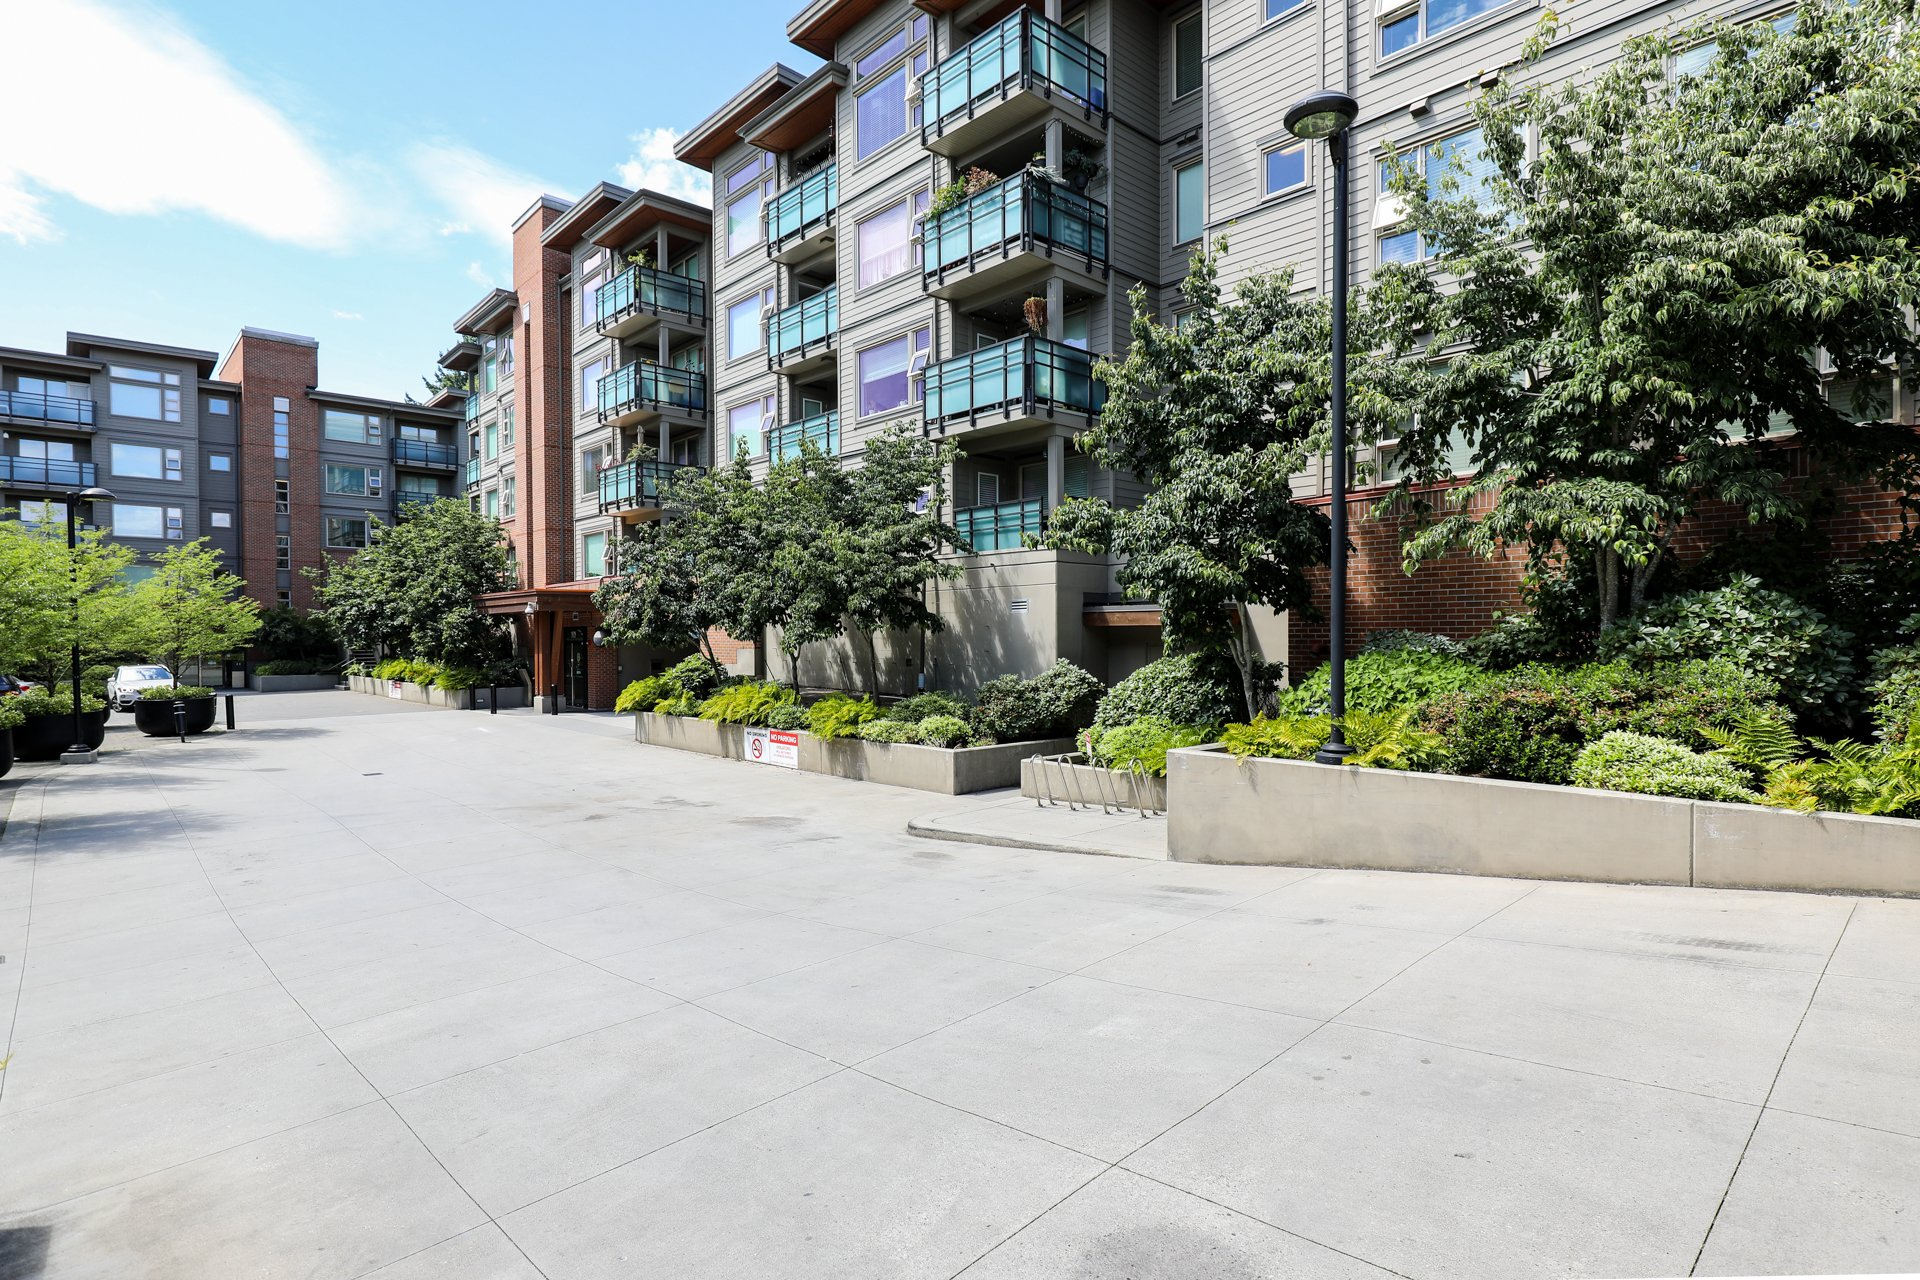 District Crossing - 1673 Lloyd | Condos For Sale + New Listing Alerts